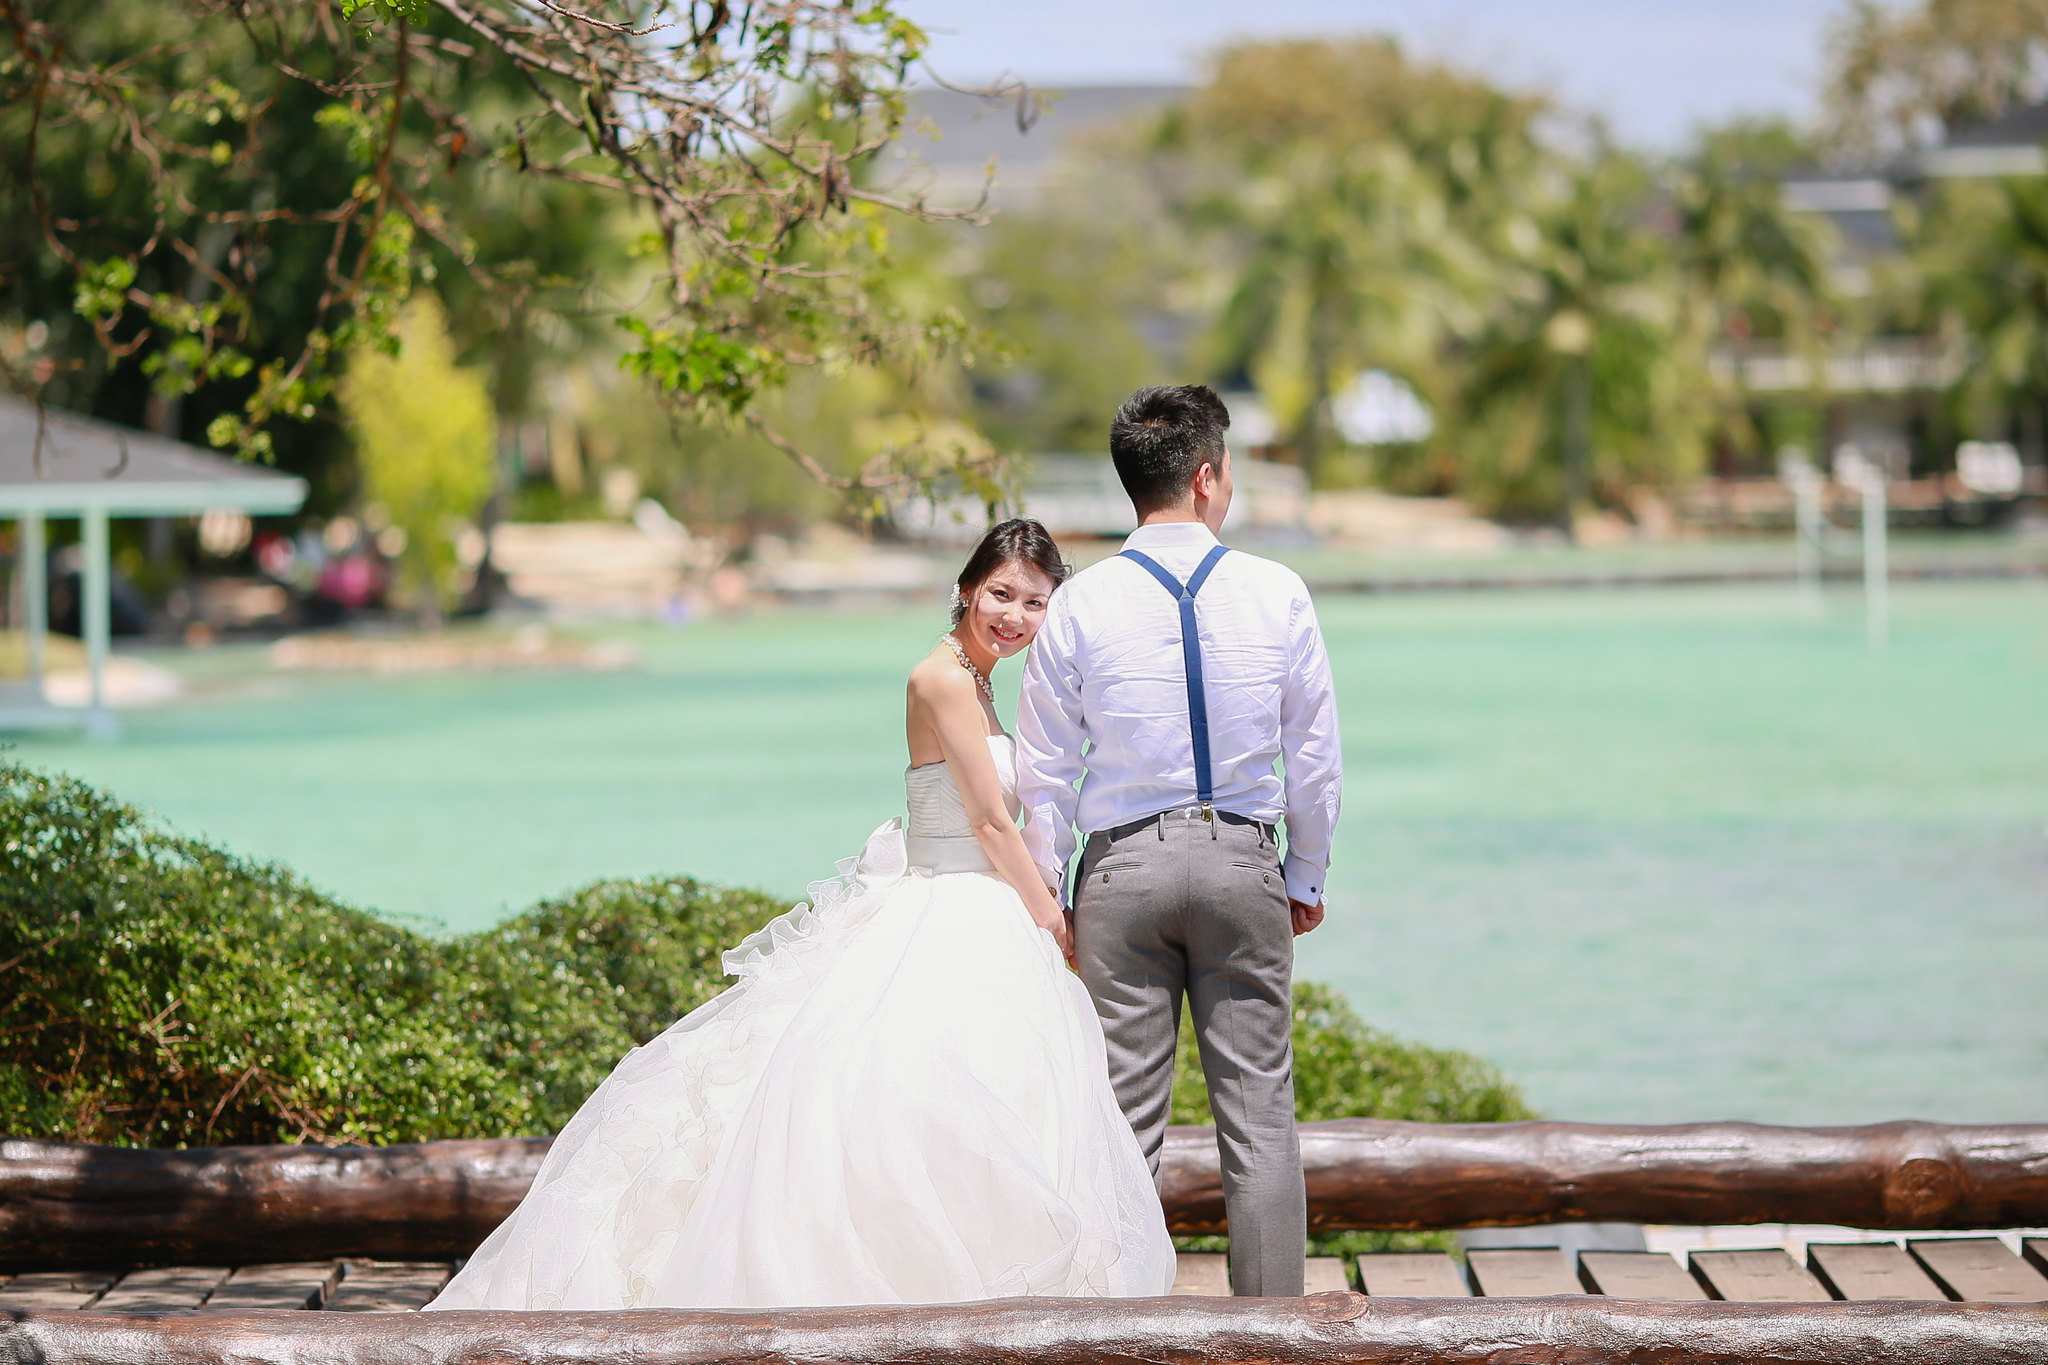 Cebu Wedding Photographer, Cebu Best Wedding Photographer